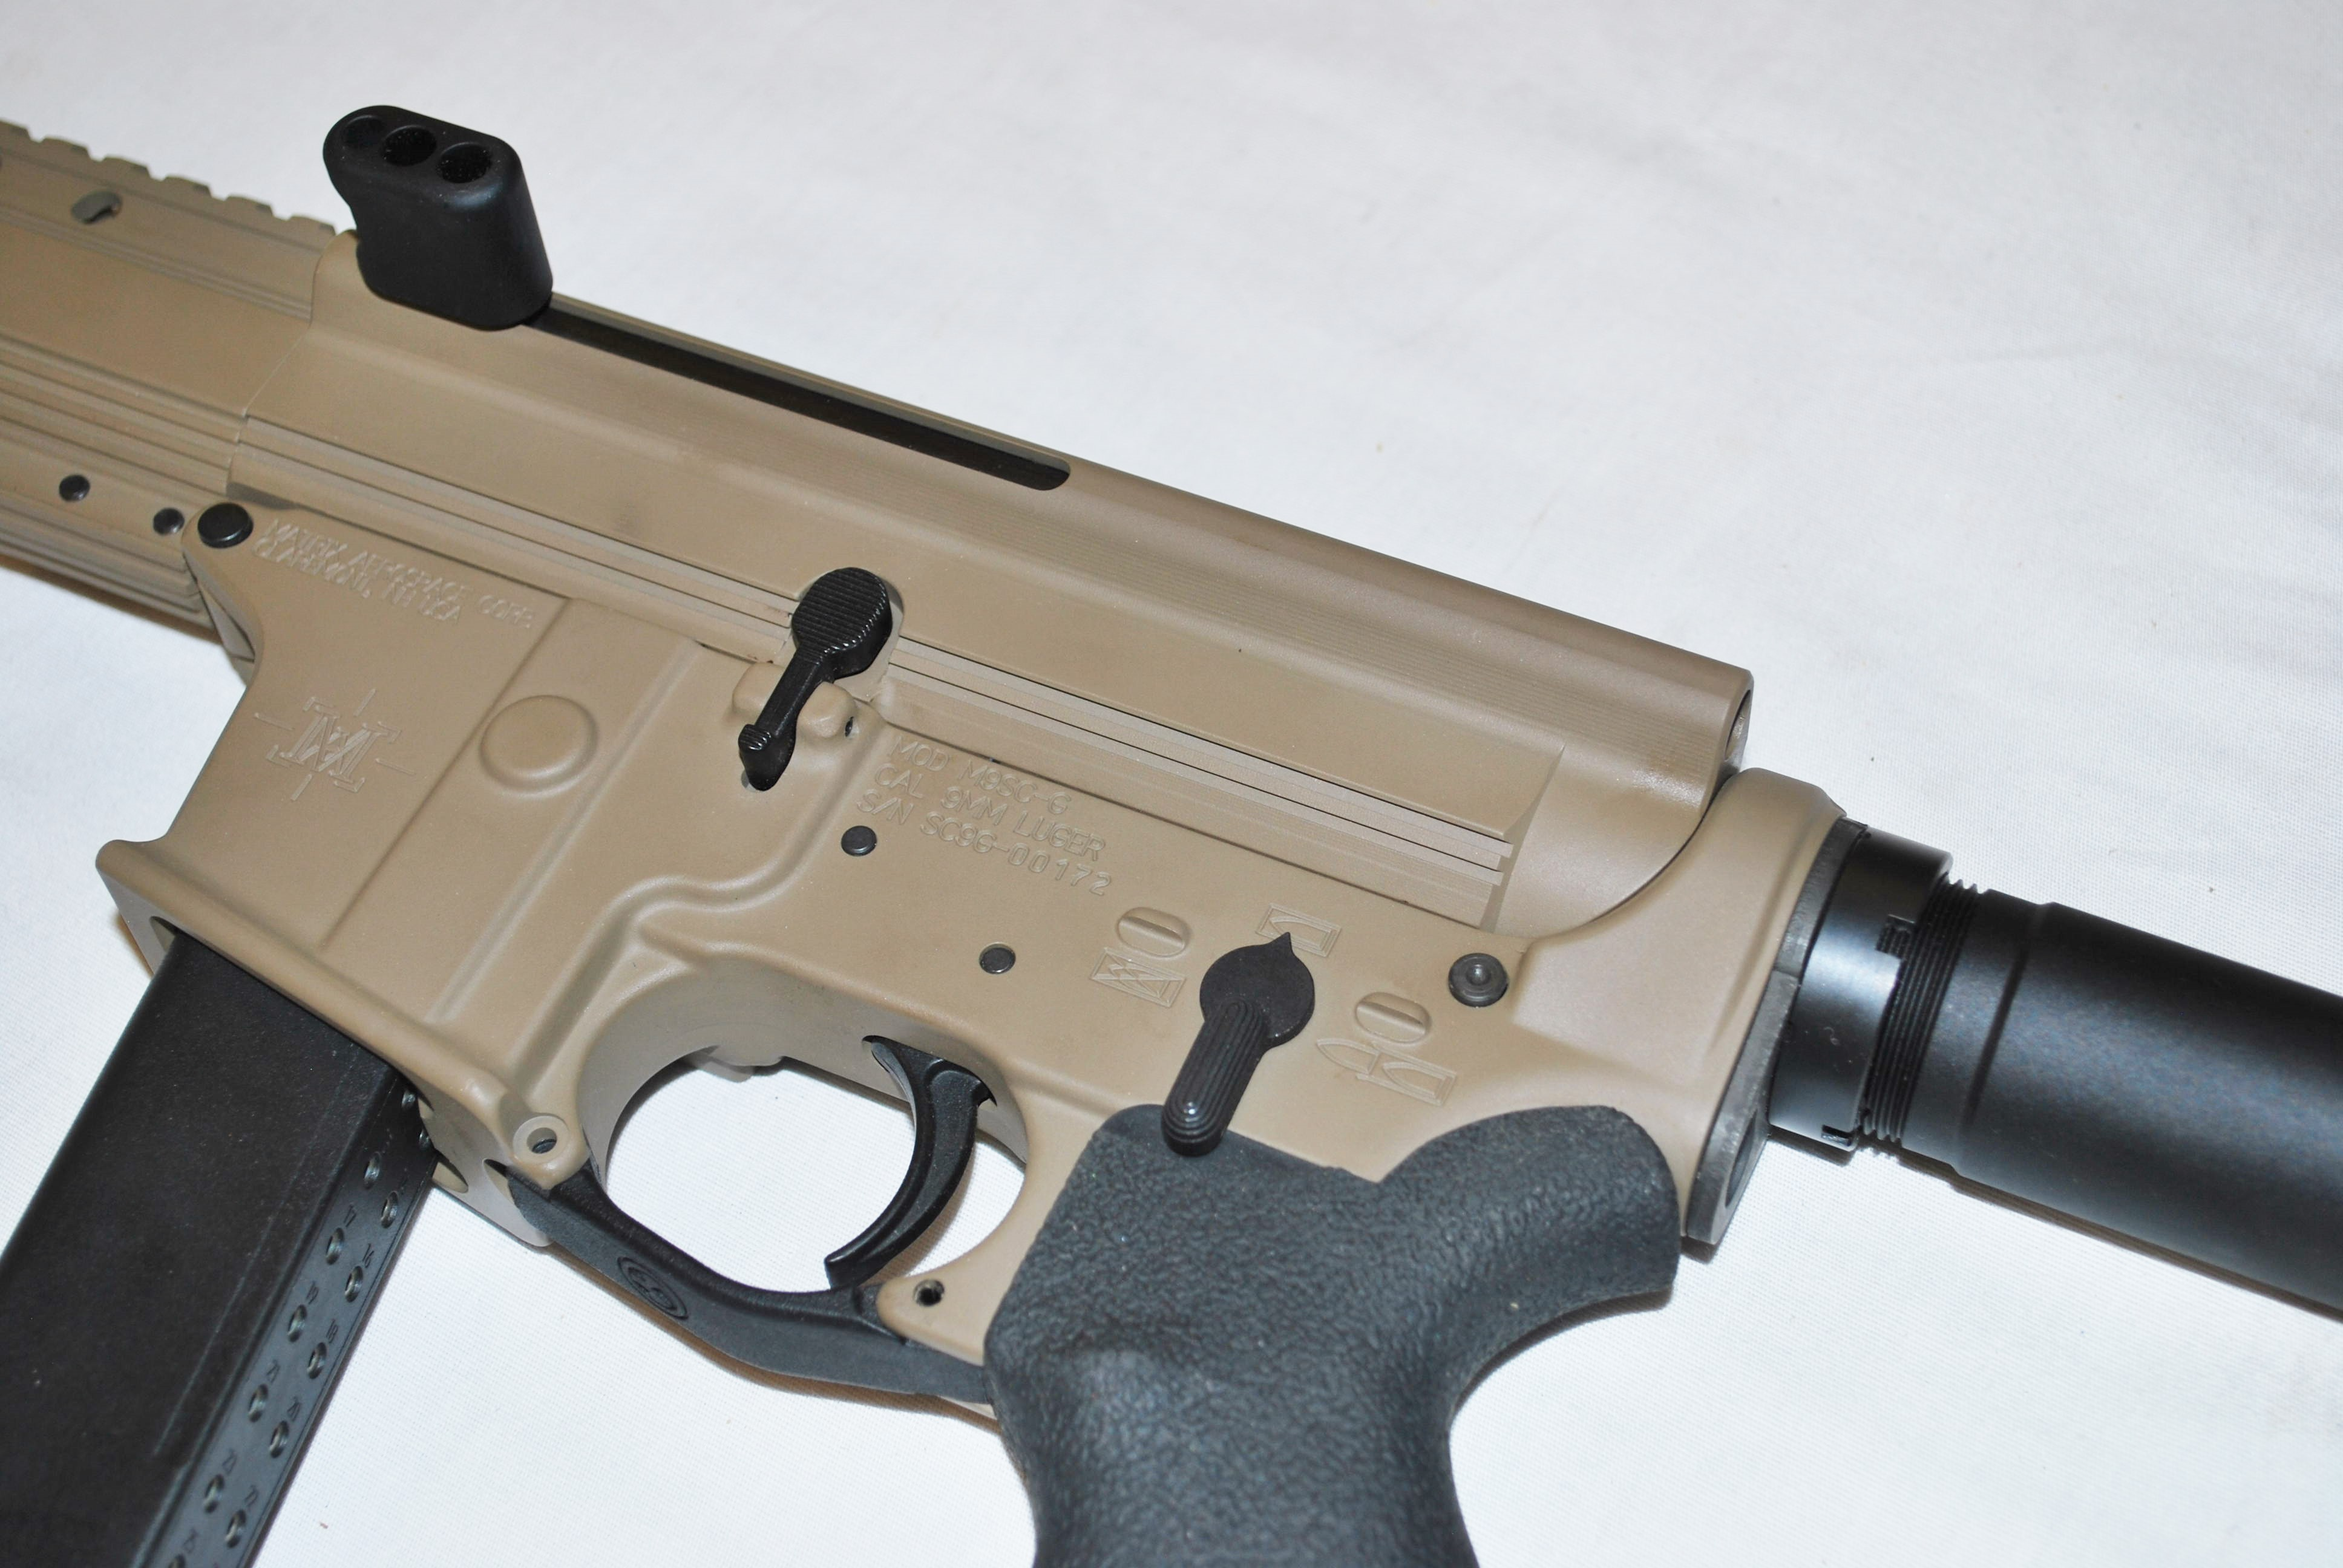 LF9-SC 5 5″ Glock Side Charge Pistol – Mad River